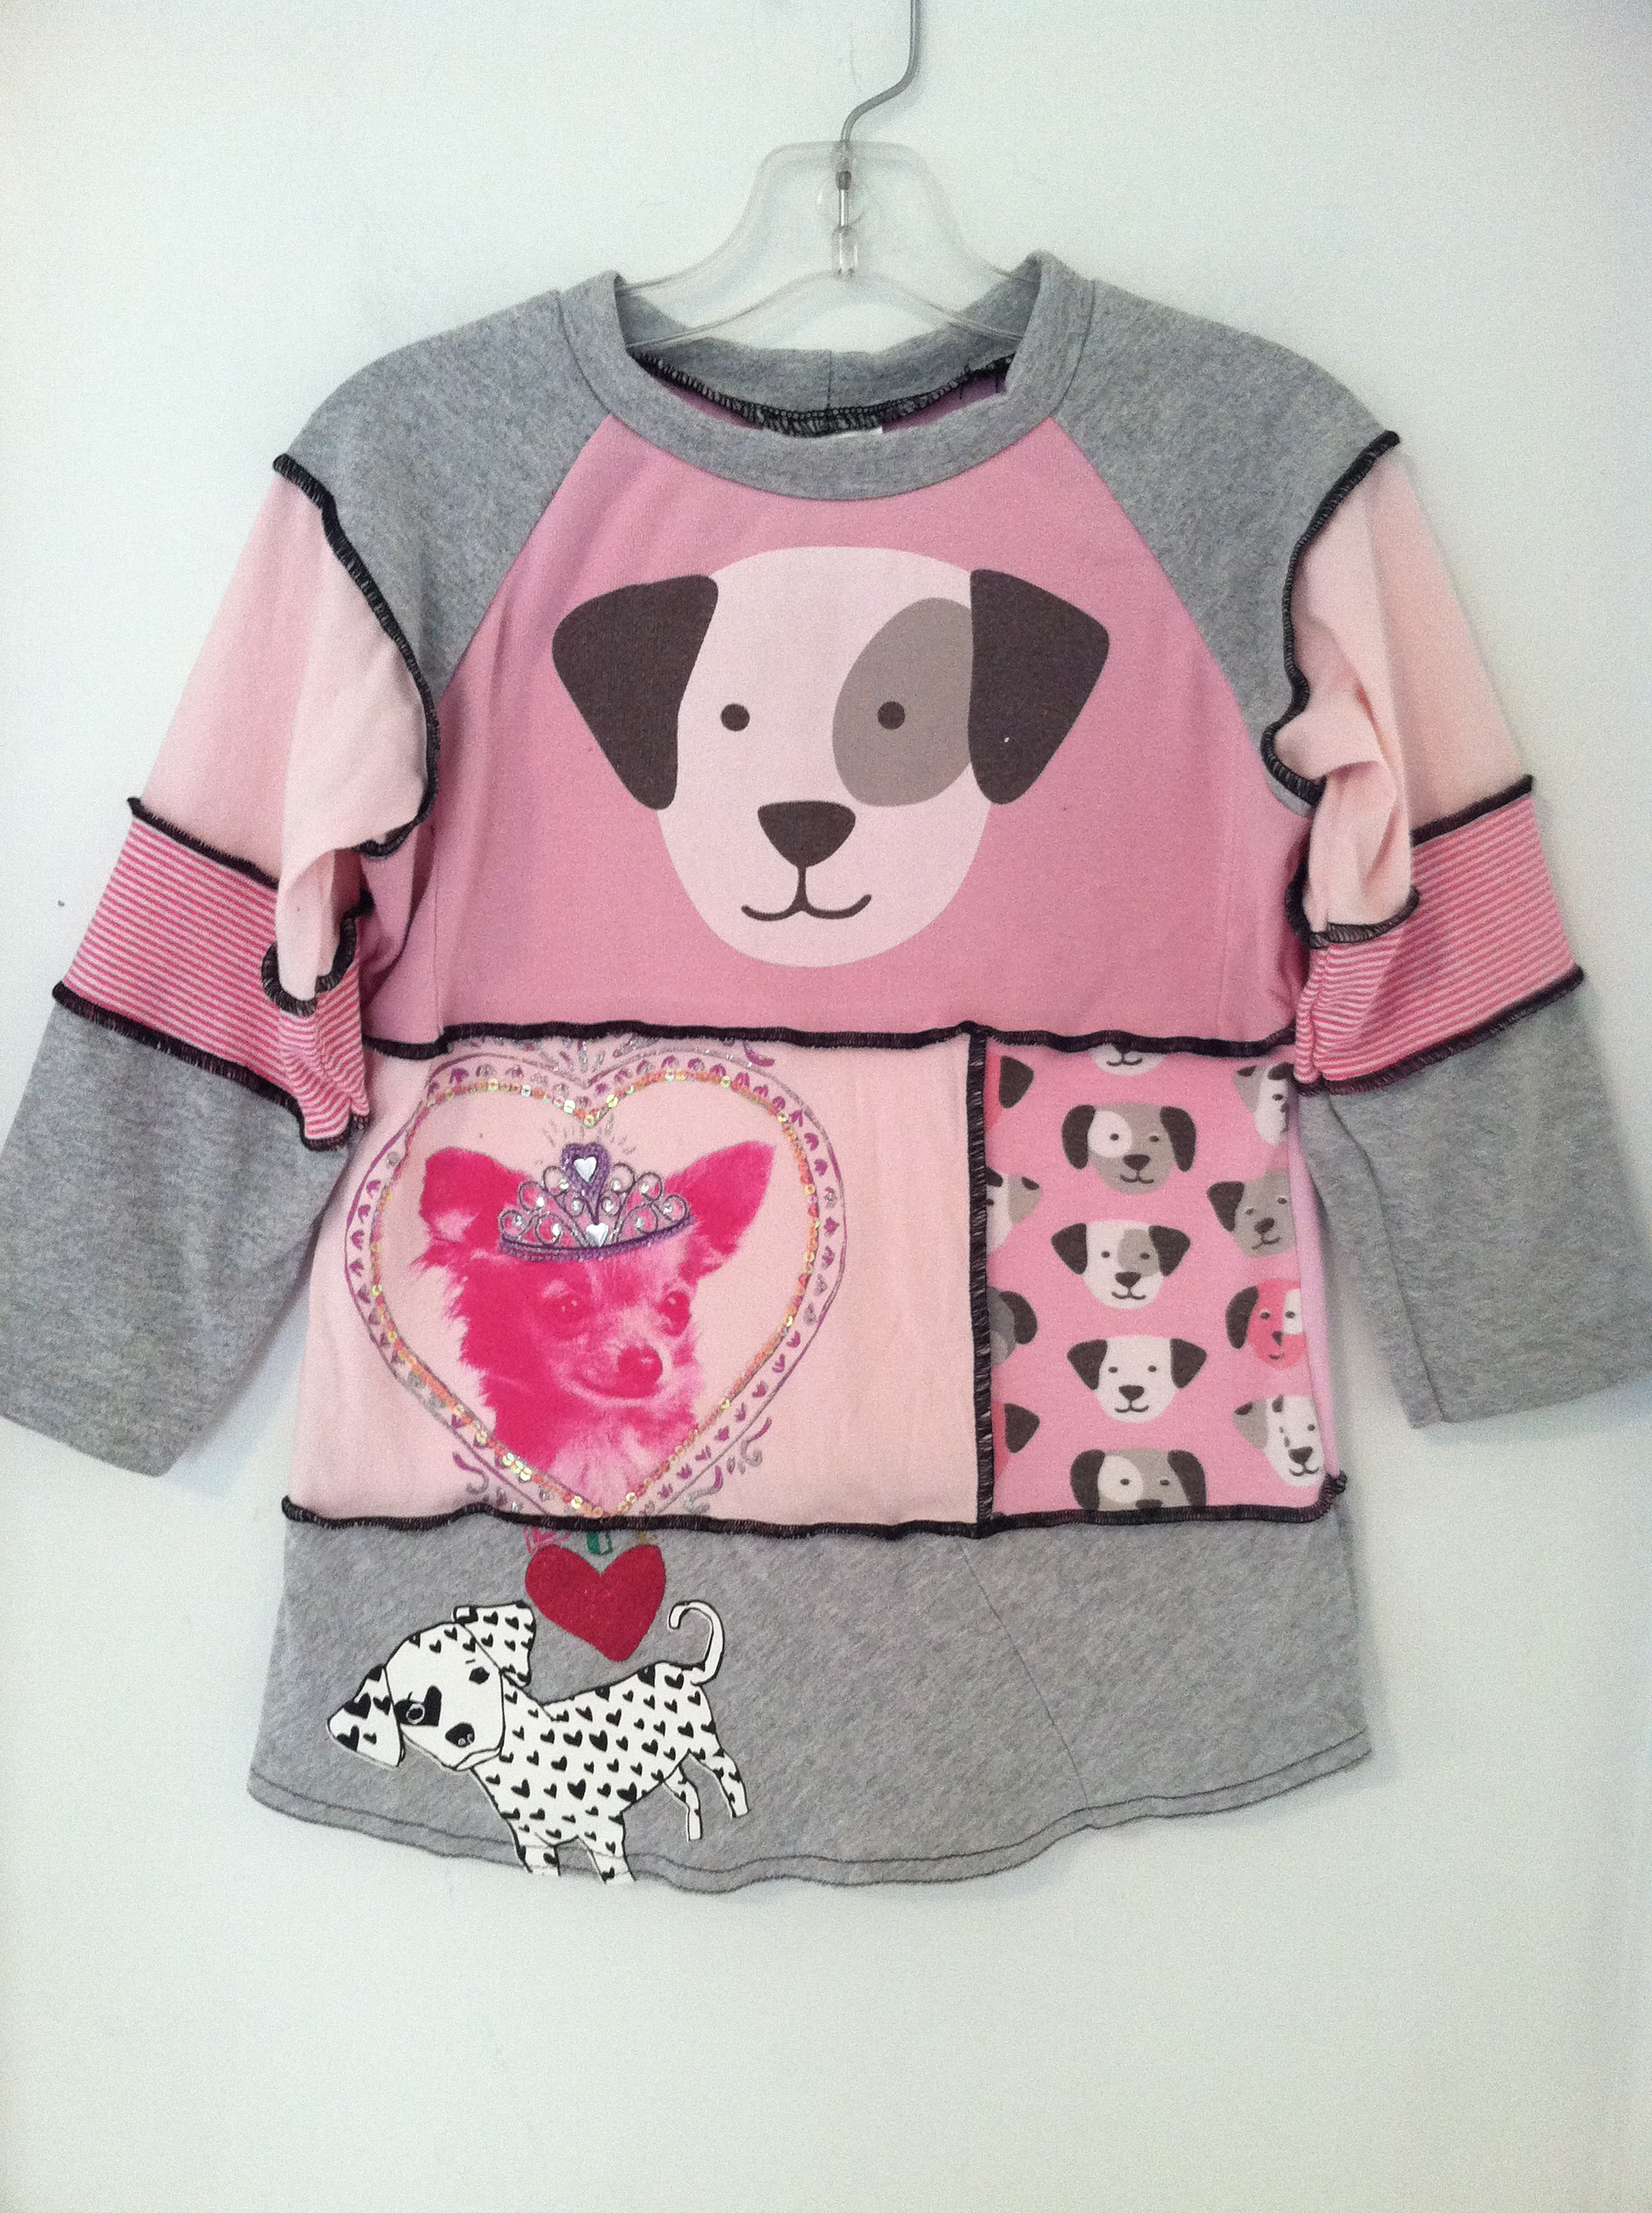 Child's shirt, made from 6 recycled t shirts, sizes xs 6-12mo,  s 18mo-2T, m 2-4, L 4-6, xl 8-10 $29